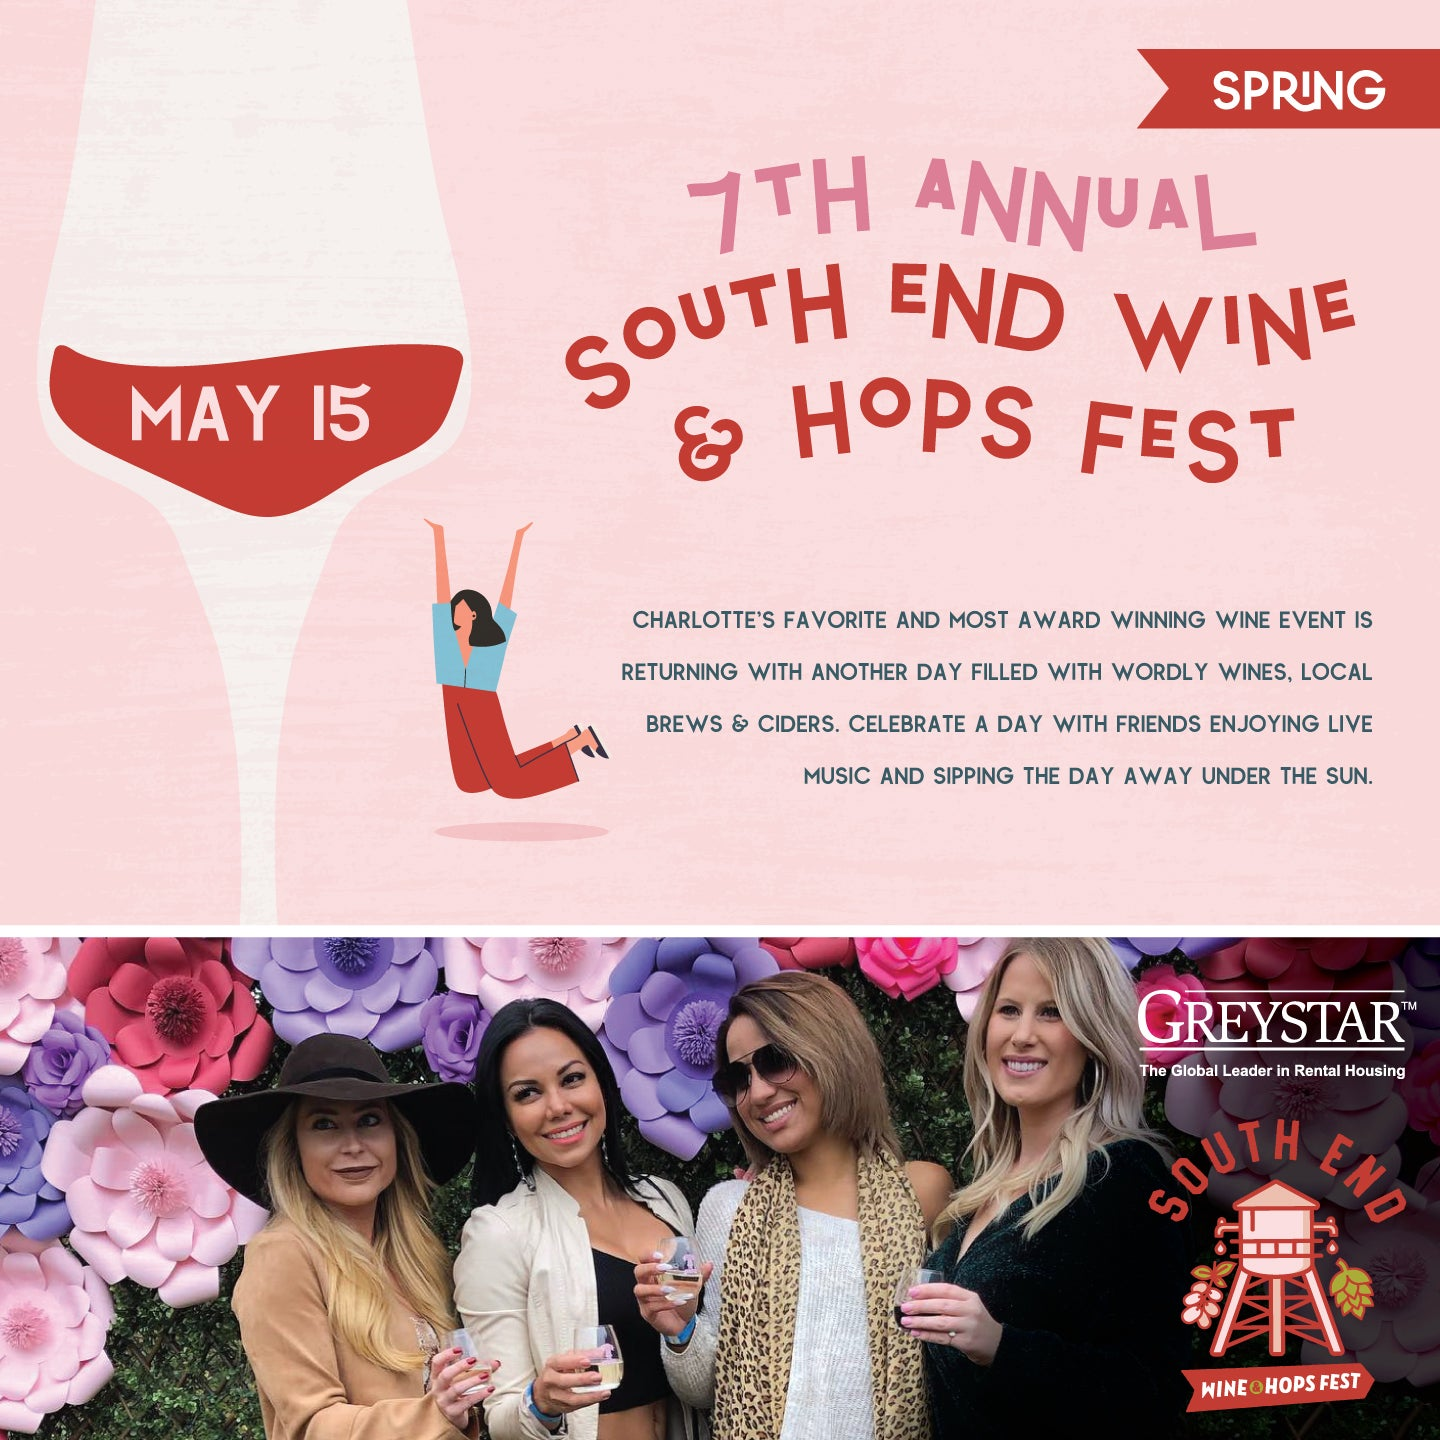 7th Annual Spring South End Wine and Hops Fest - Saturday